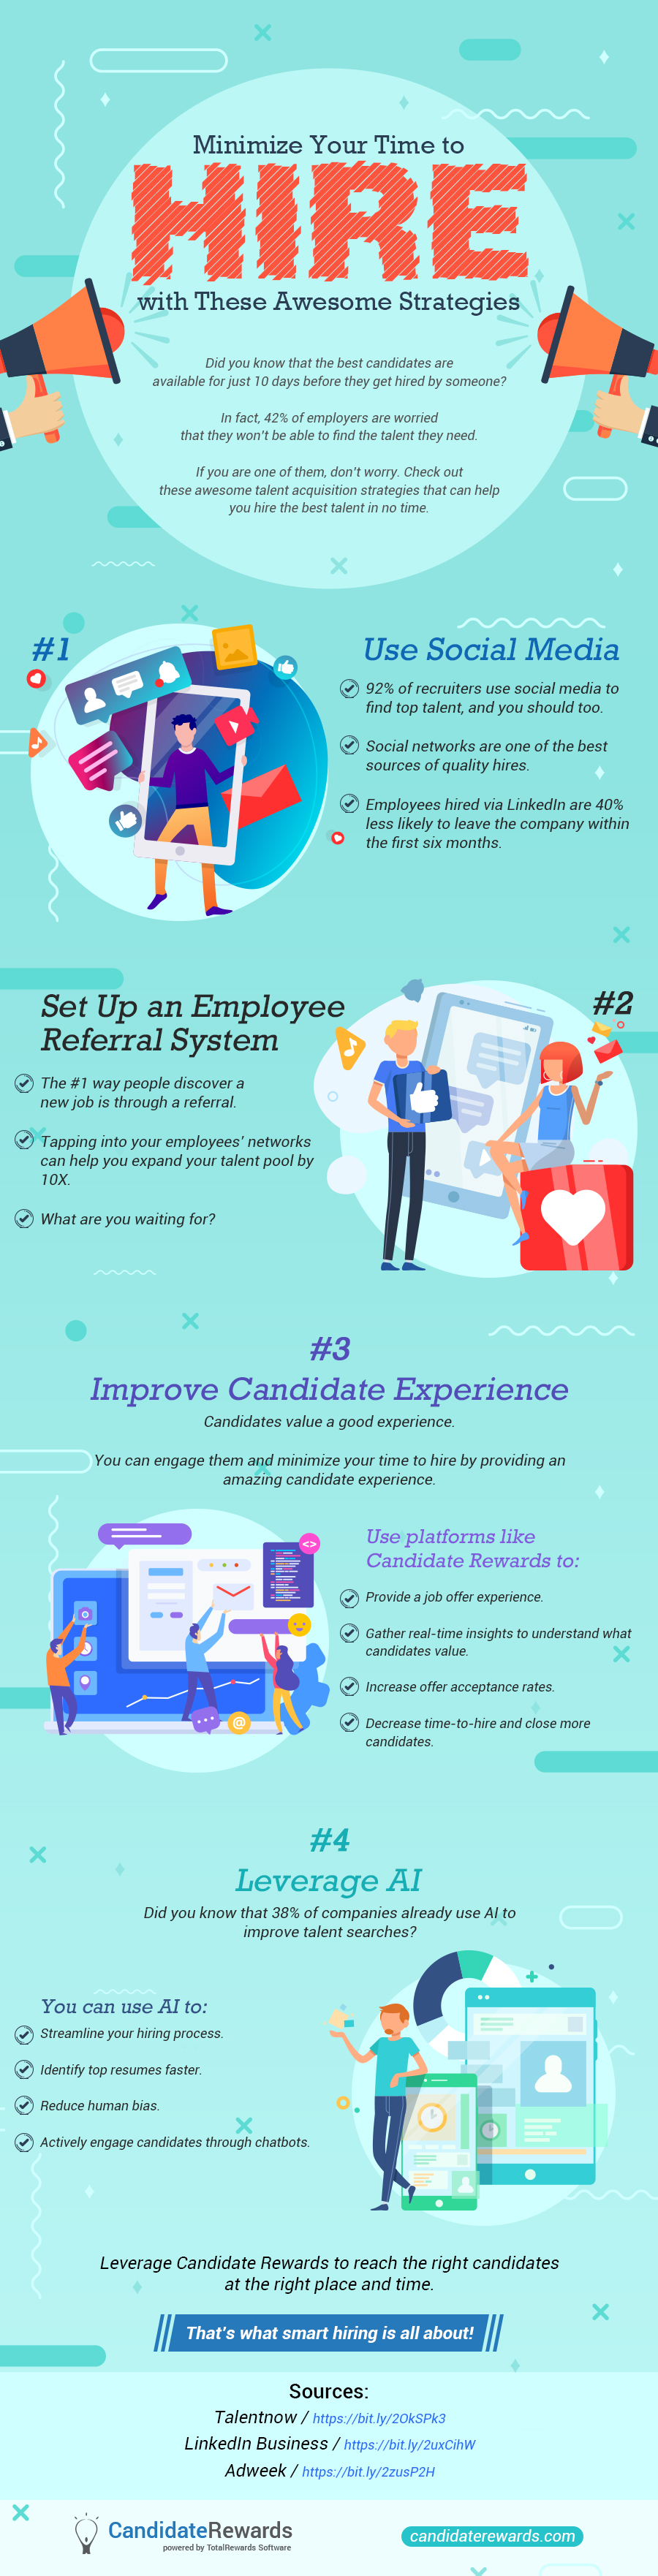 Minimize-Your-Time-to-Hire-with-These-Awesome-Strategies